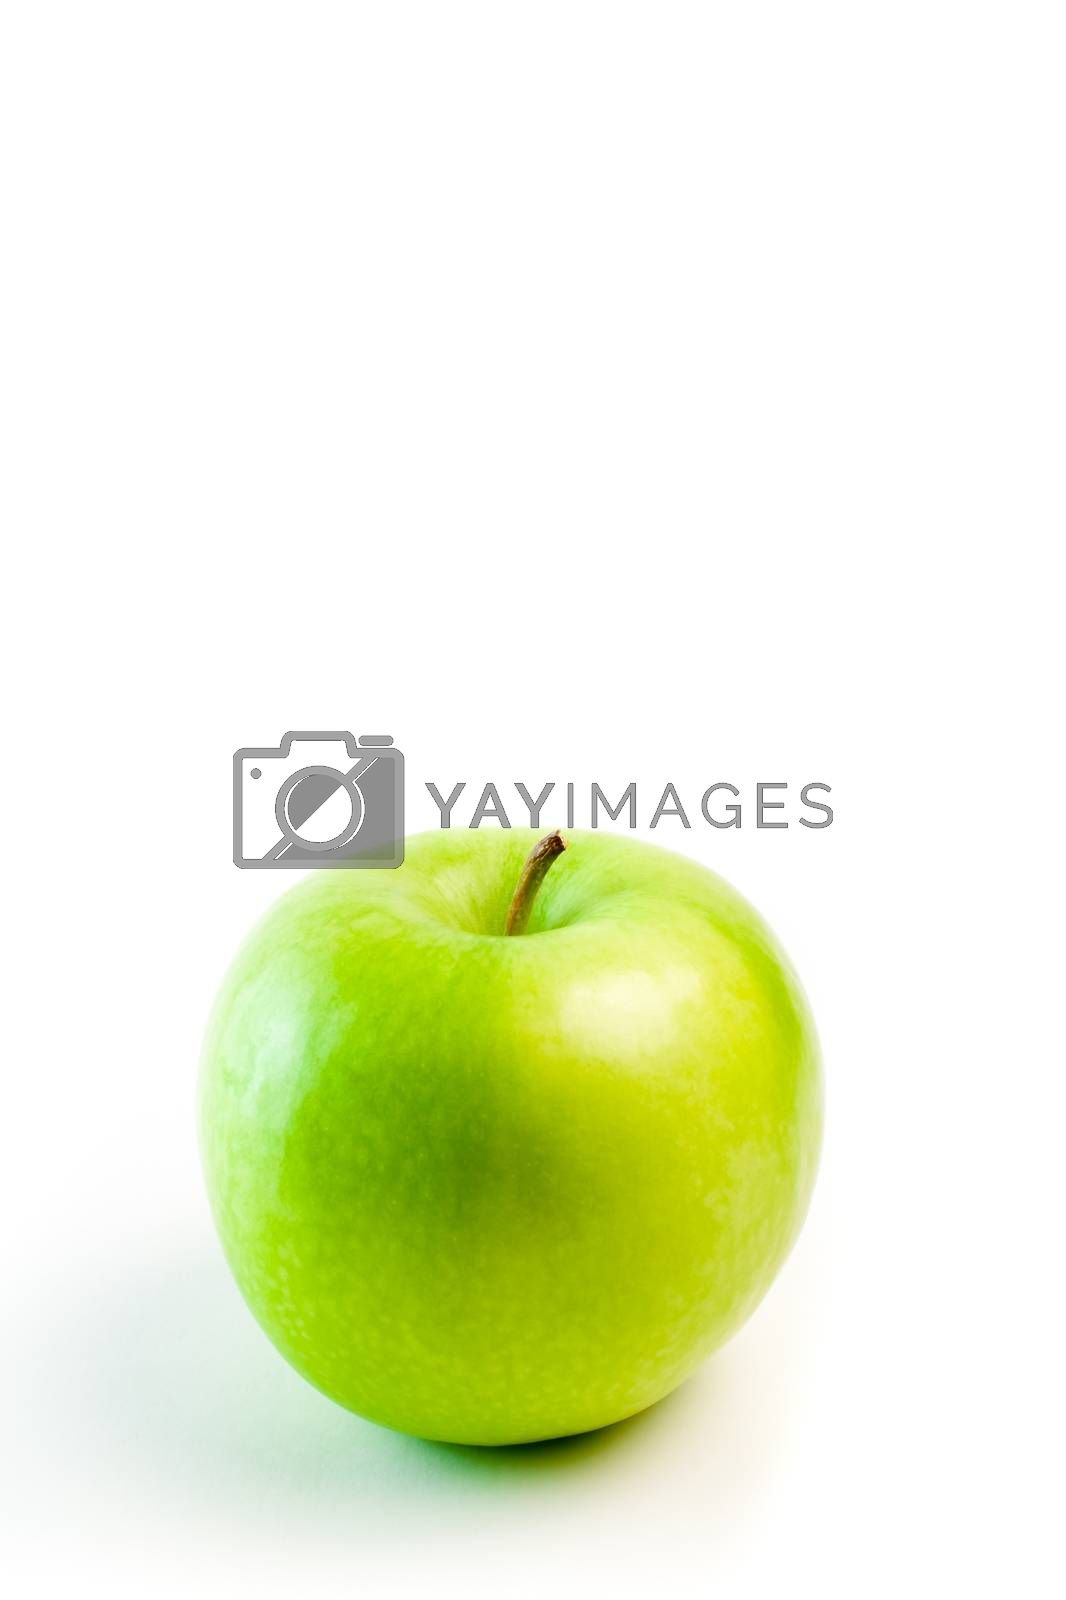 detail of green apple on white background